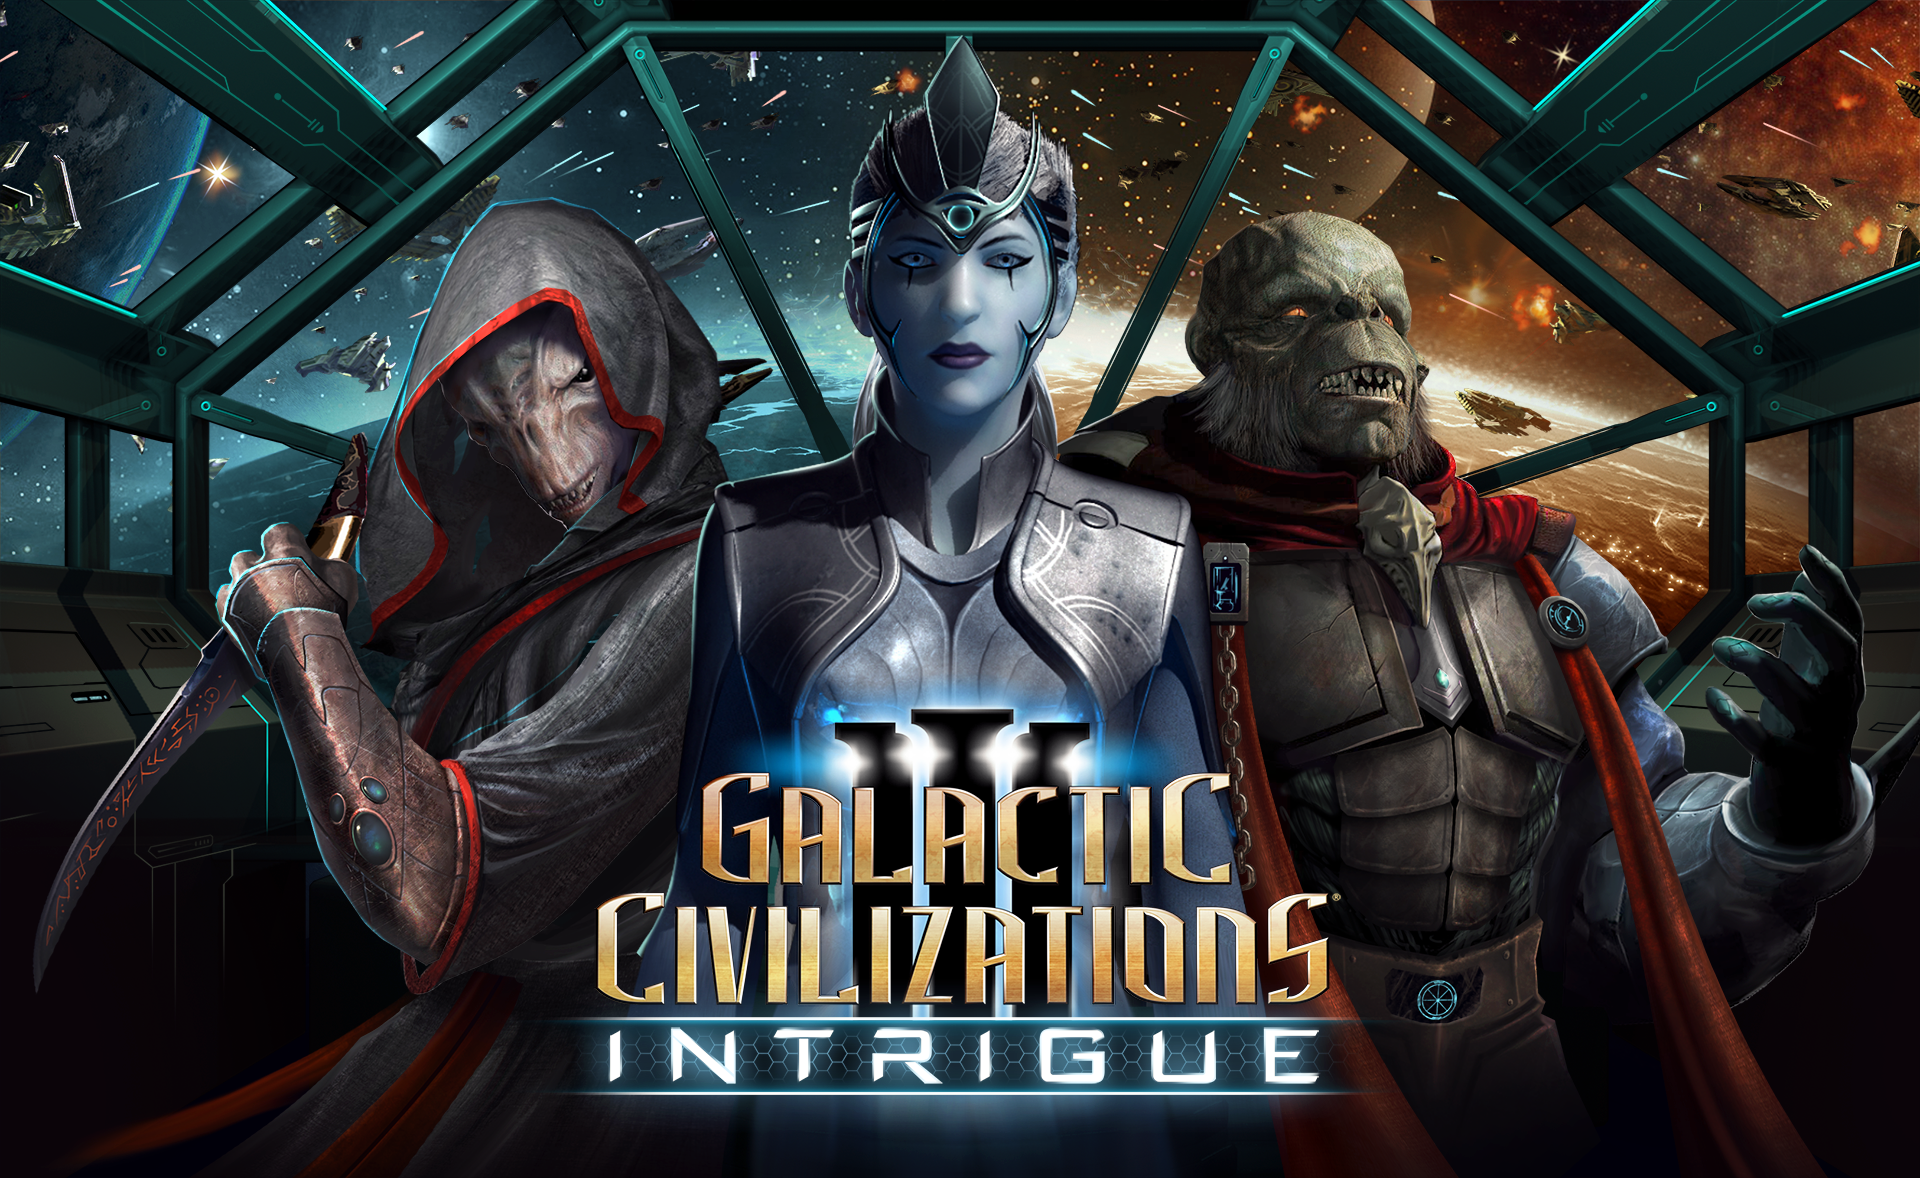 Galactic Civilizations III's new expansion gives you the tools to rule however you want